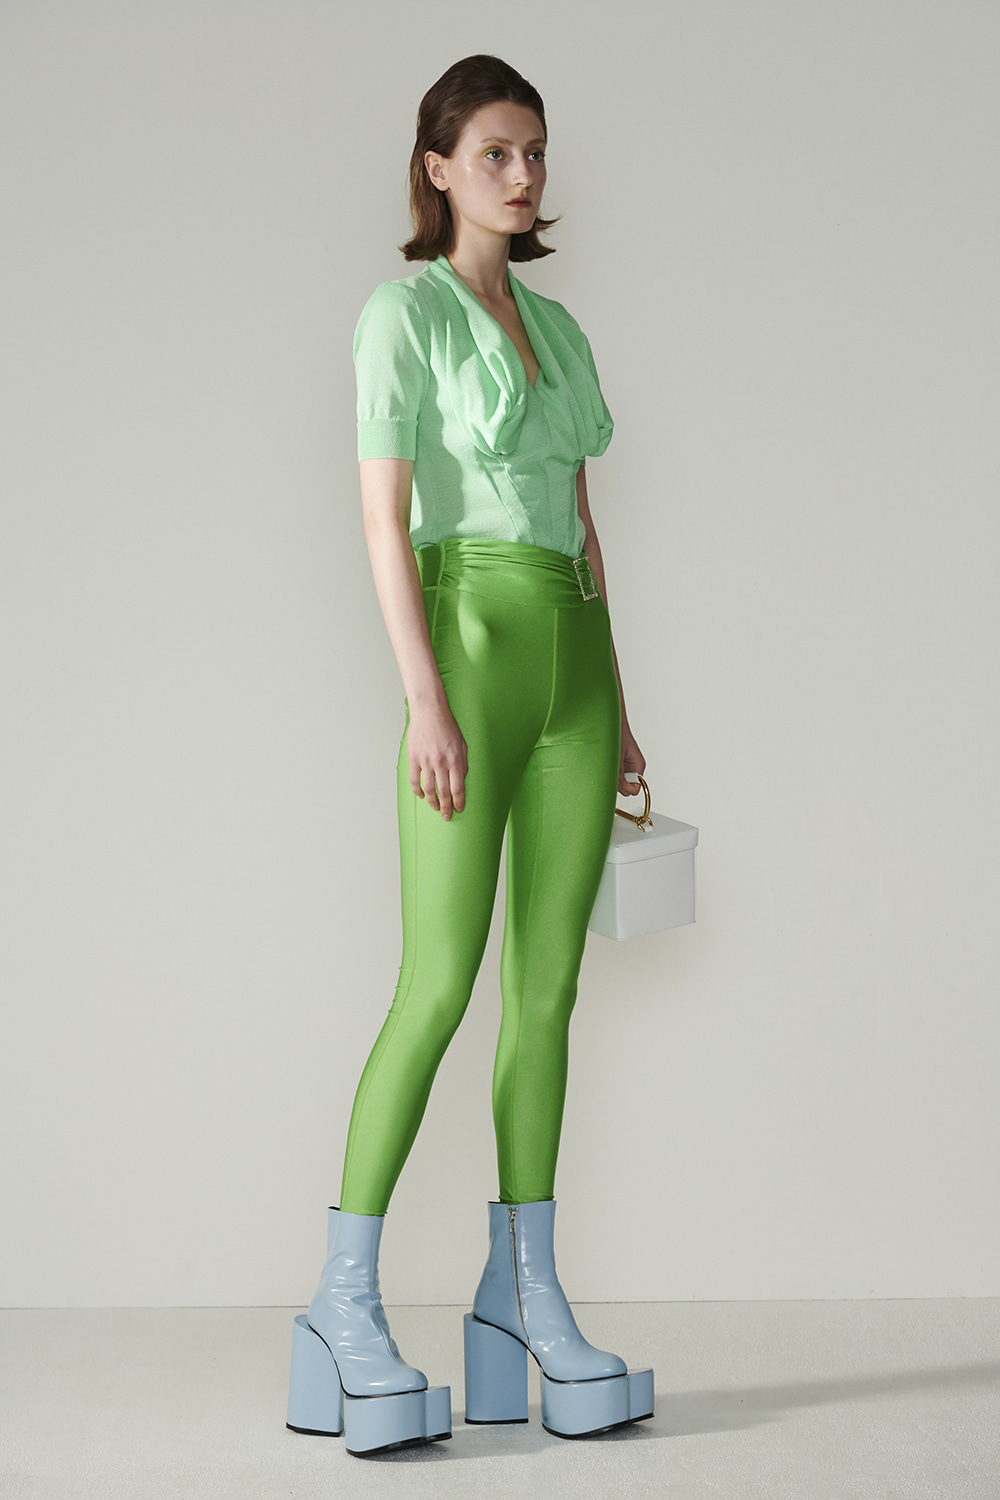 SS21 JEWELLED POINT GREEN LEGGINGS